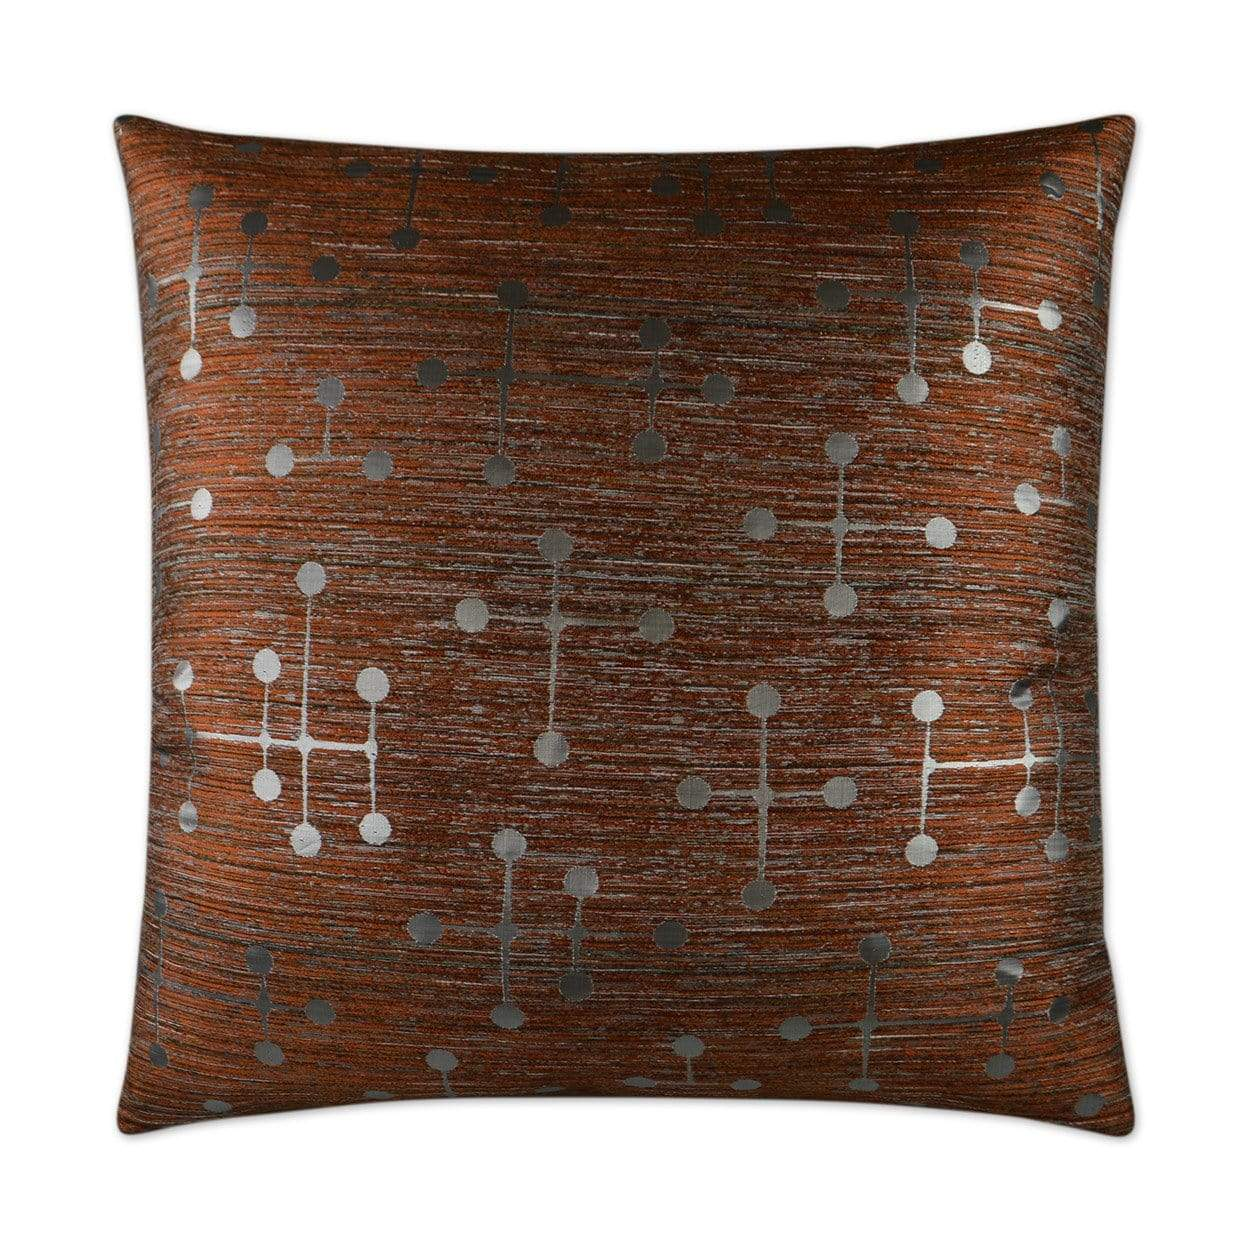 D.V. Kap D.V. Kap Morse Pillow - Available in 5 Colors Black 2947-B